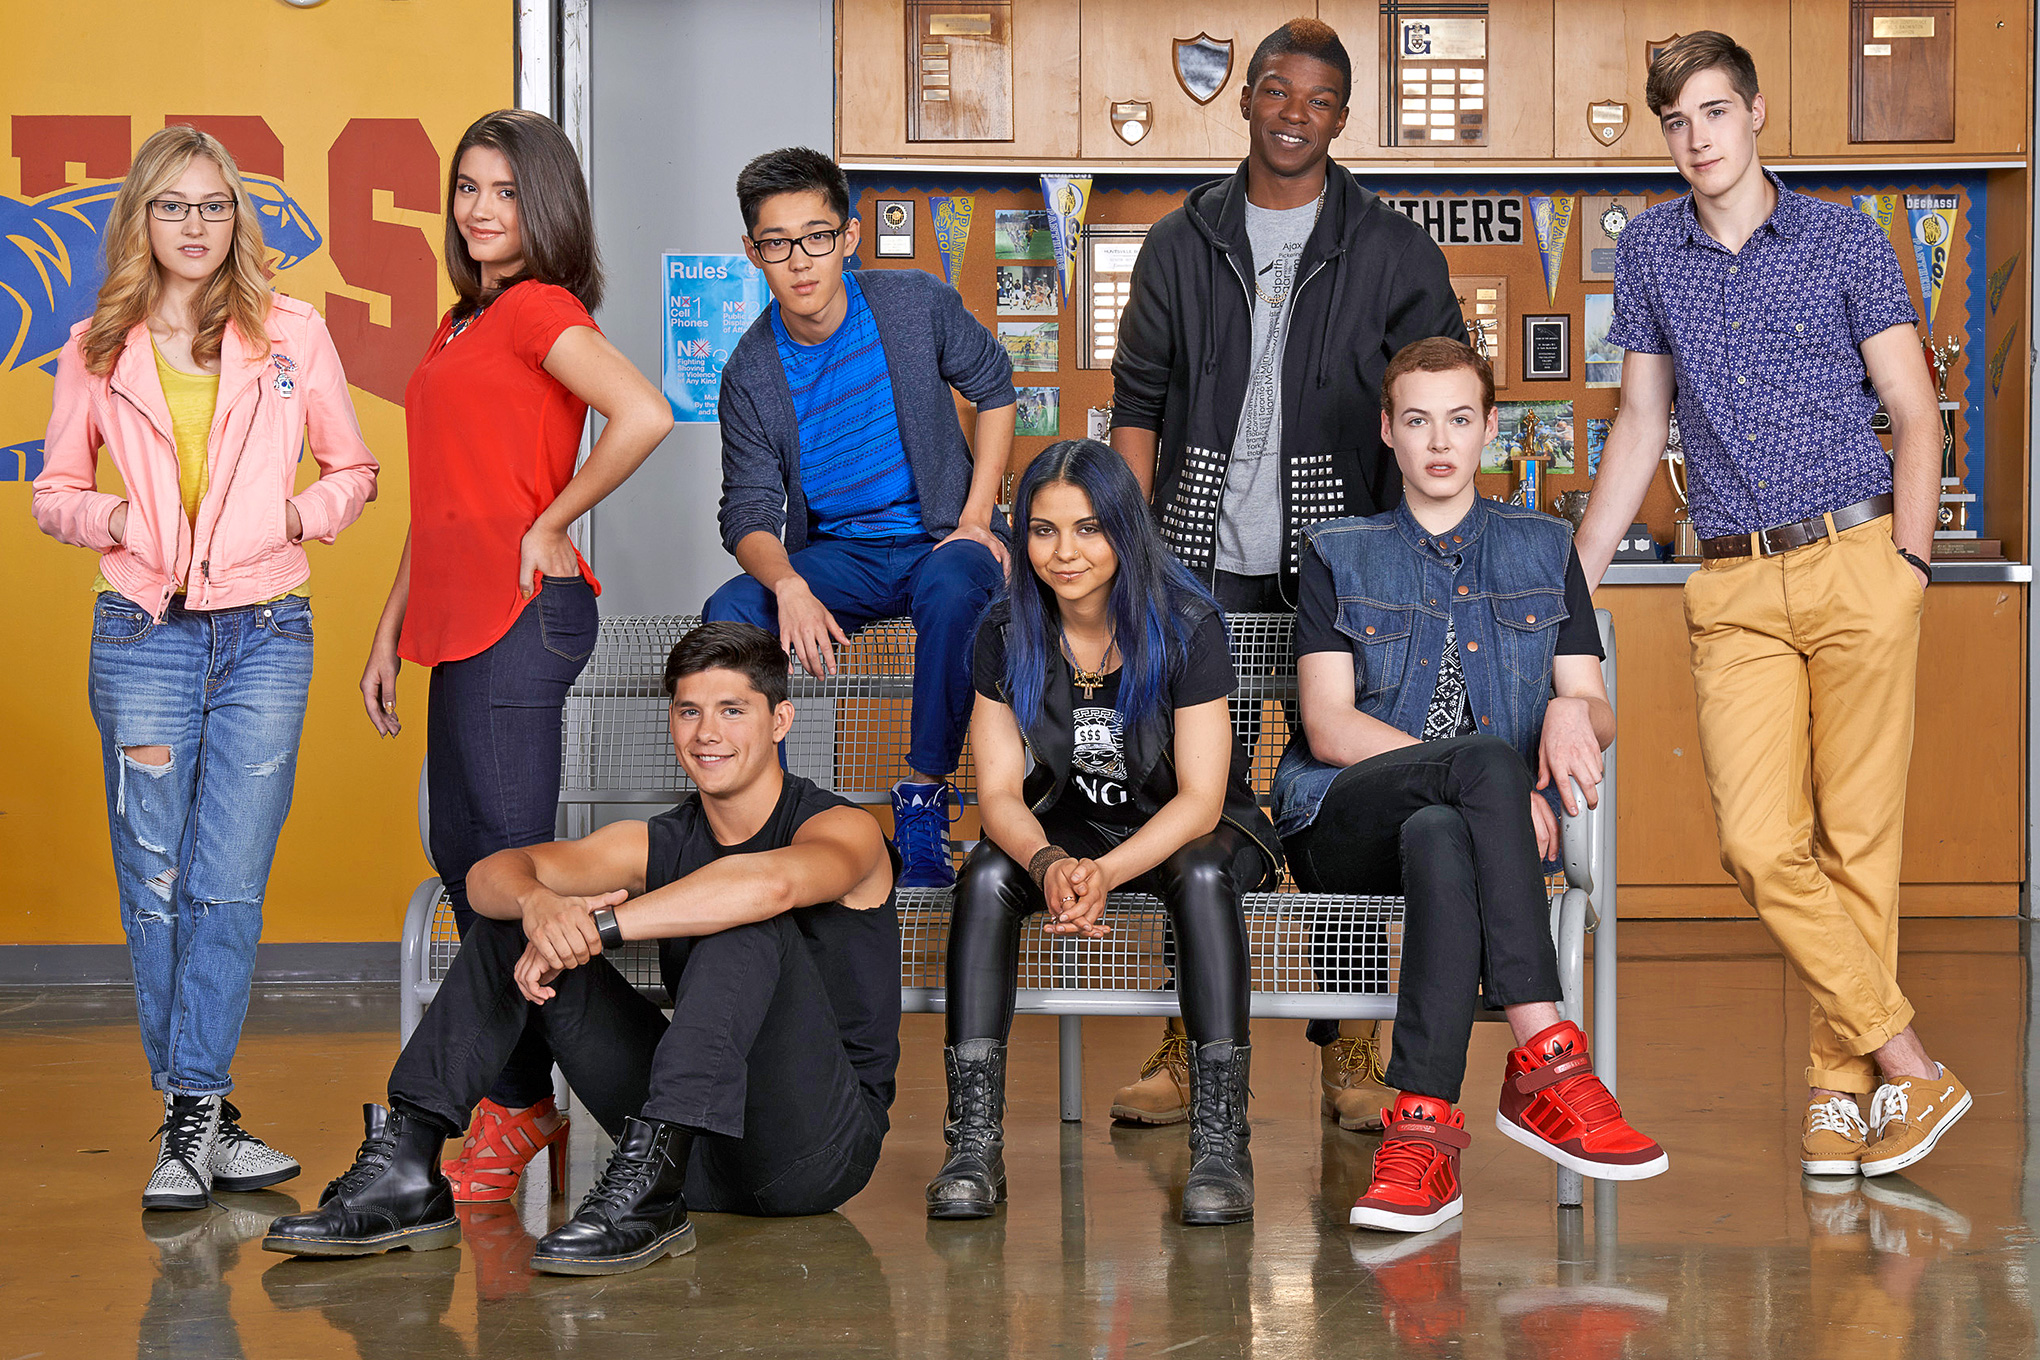 degrassi next class watch the trailer for the new netflix series canceled tv shows tv. Black Bedroom Furniture Sets. Home Design Ideas